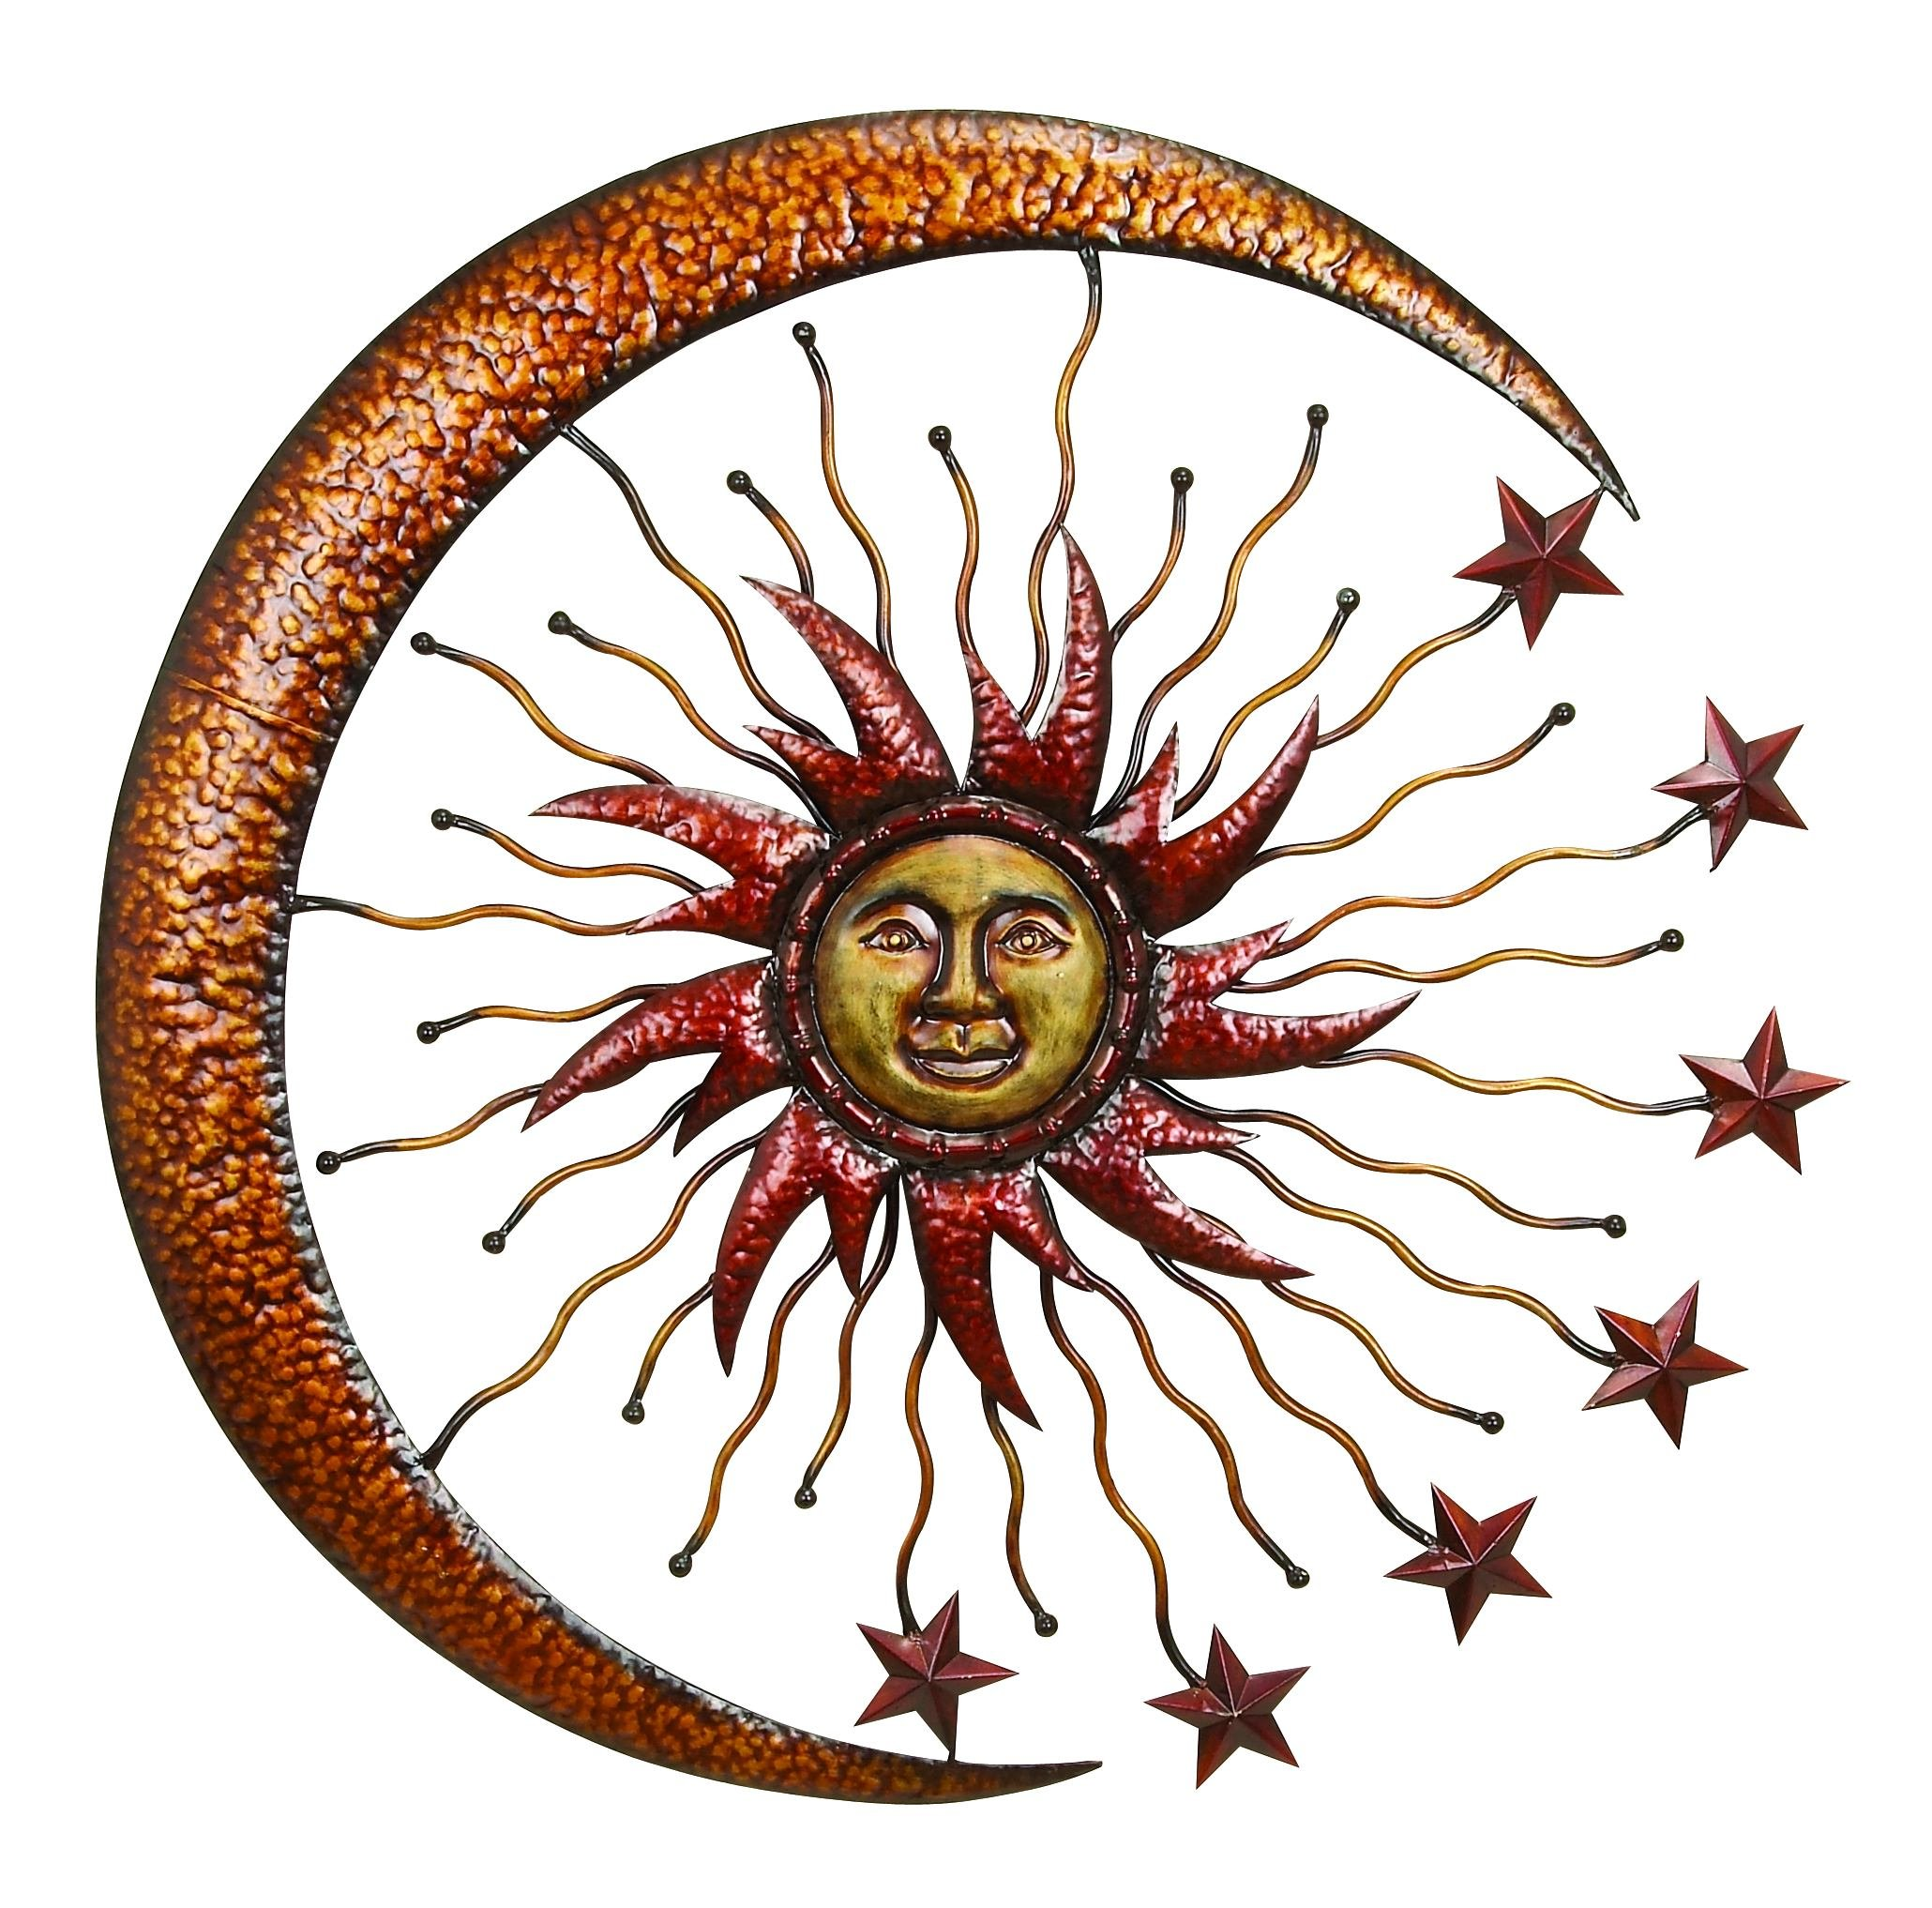 Deco 79 42770 Metal Sun Moon Wall Decor, 36'' D